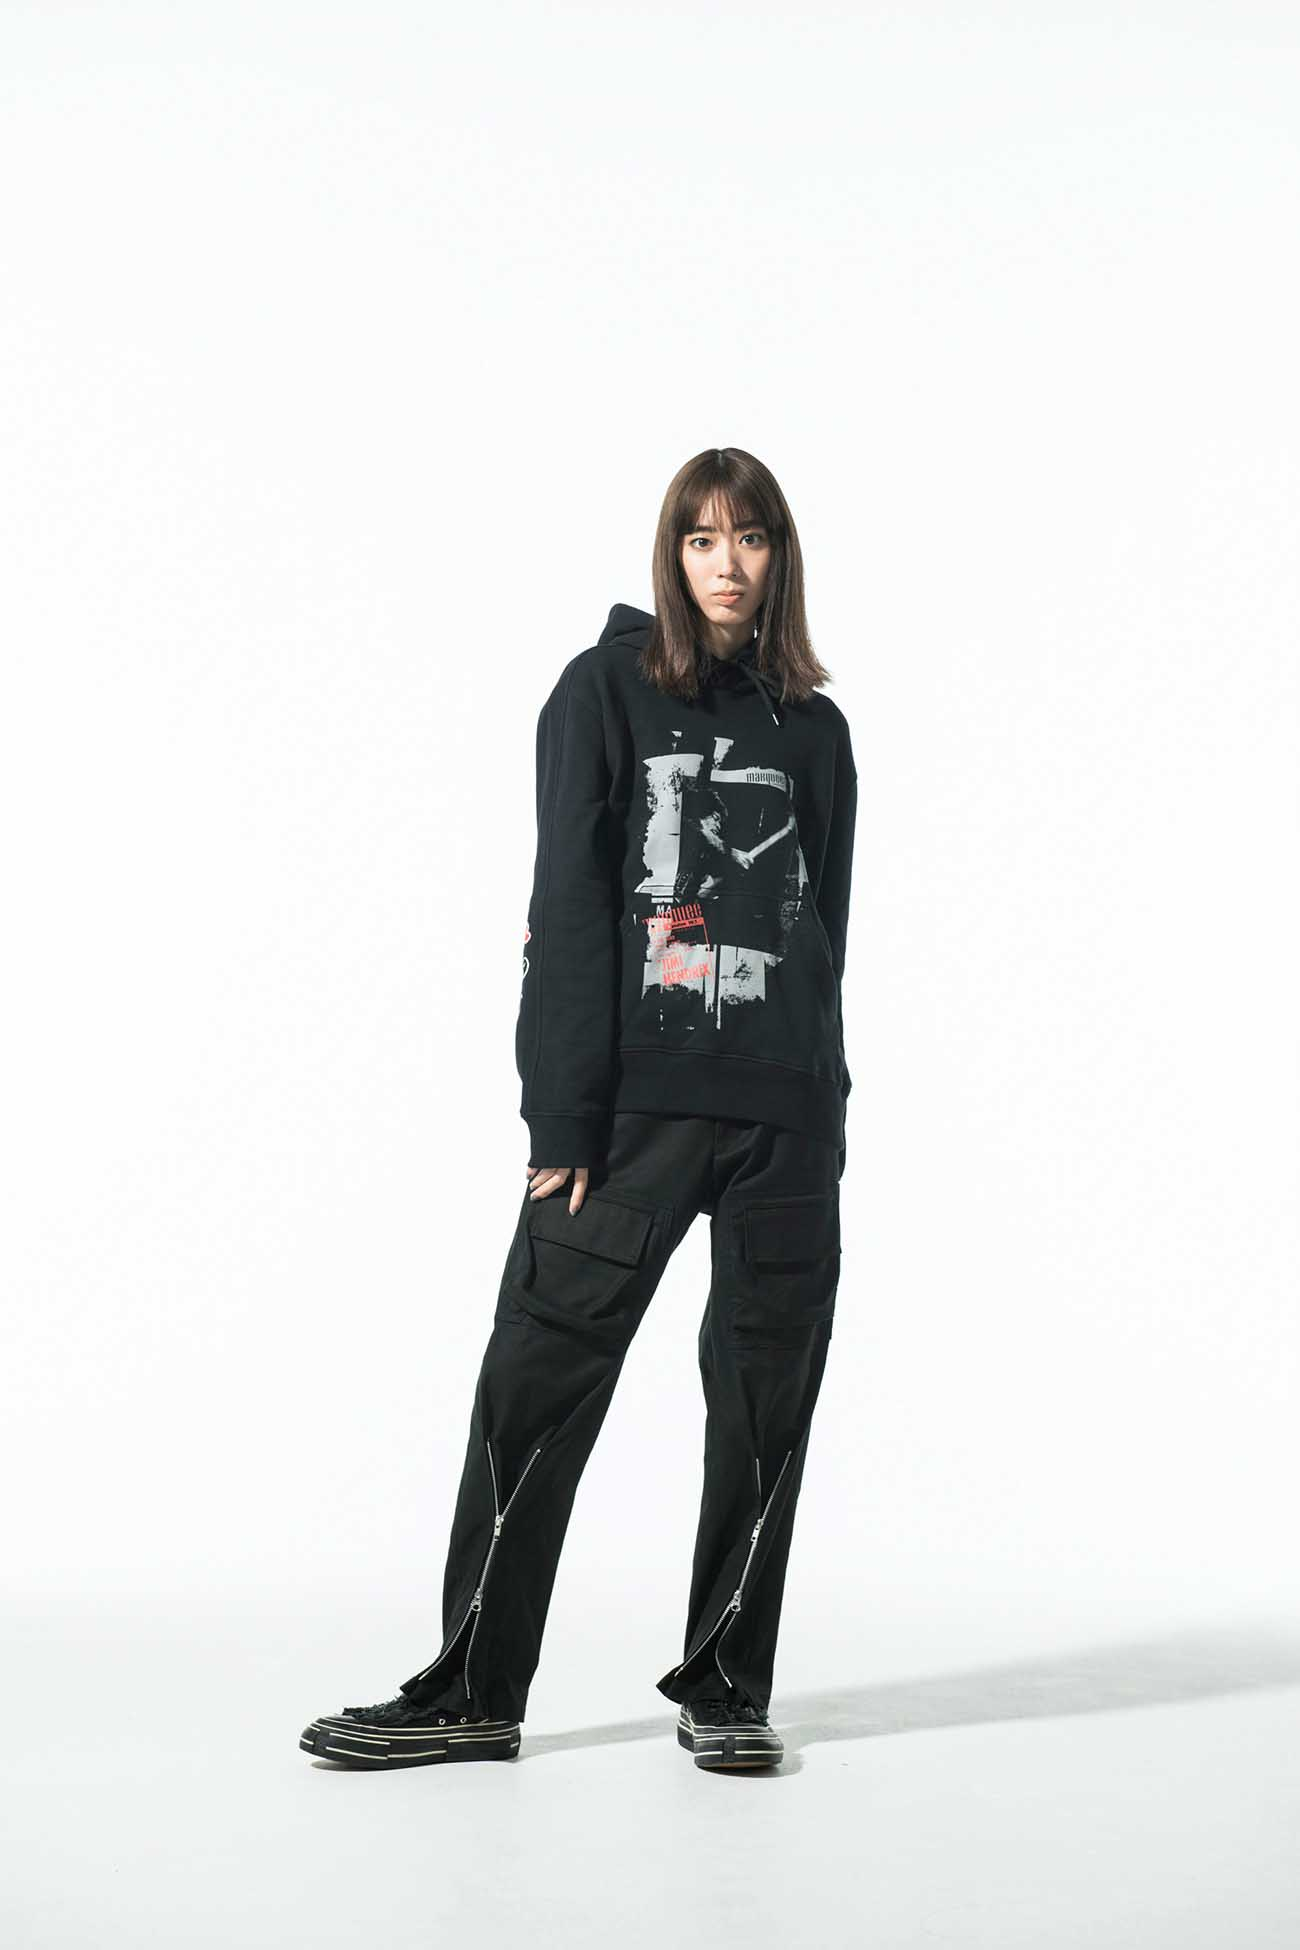 S'YTE × marquee club(TM) French Terry Stitch Work Poster Collage Hoodie